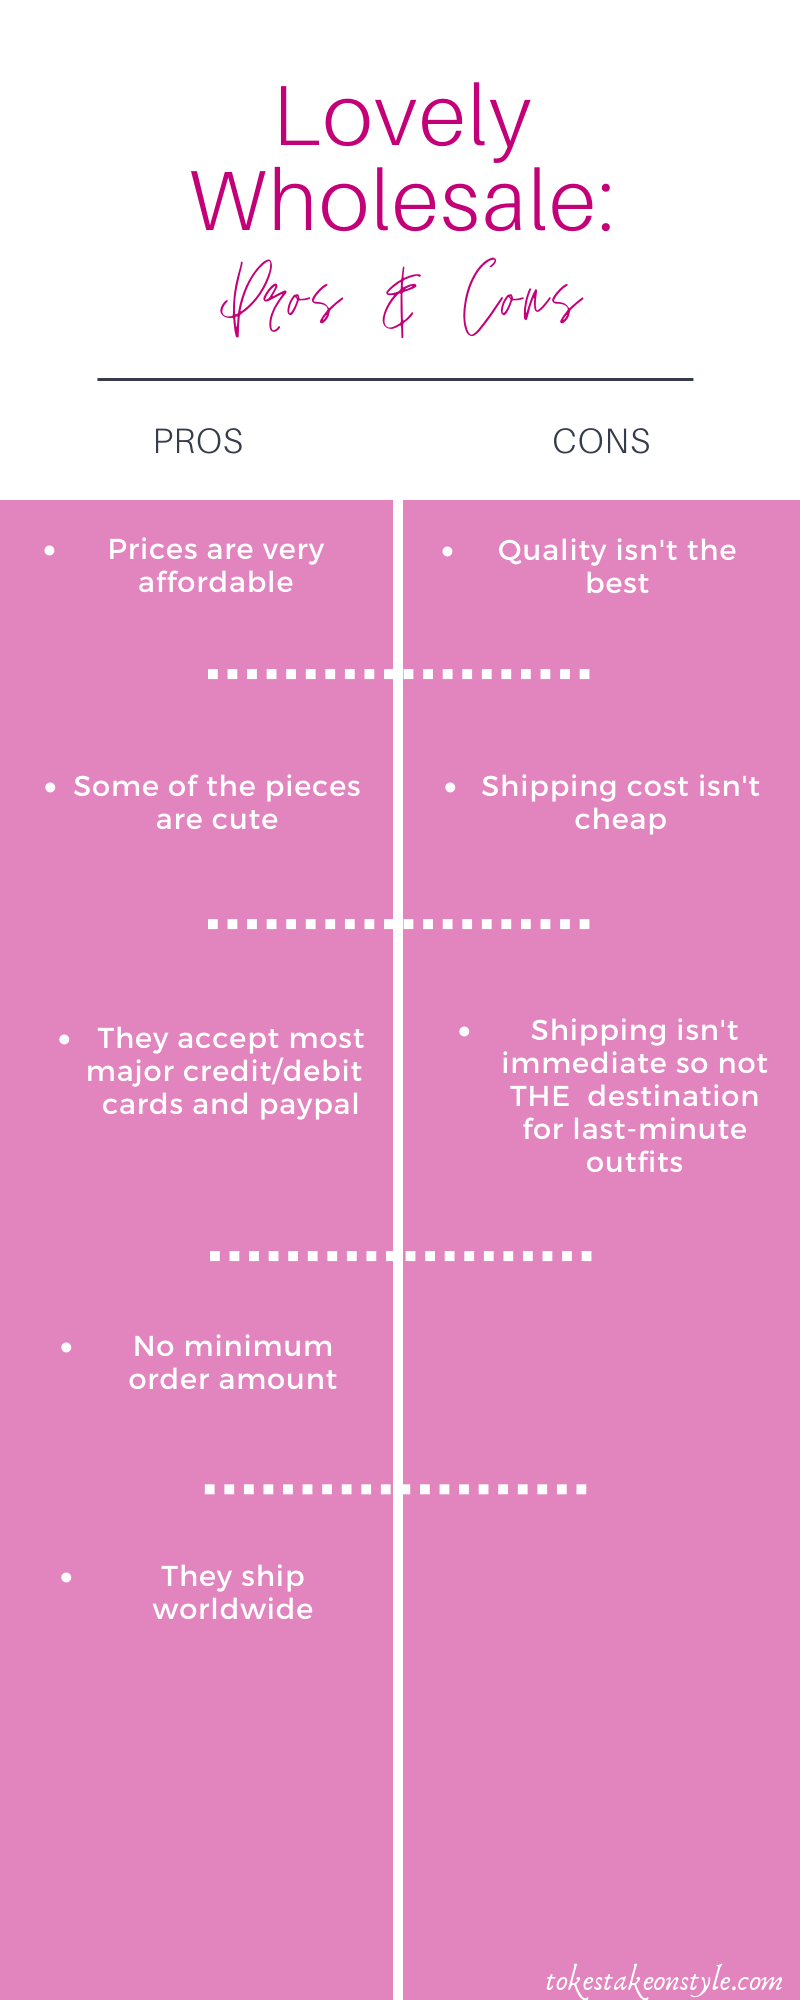 lovelywholesale.com-pros-and-cons-review